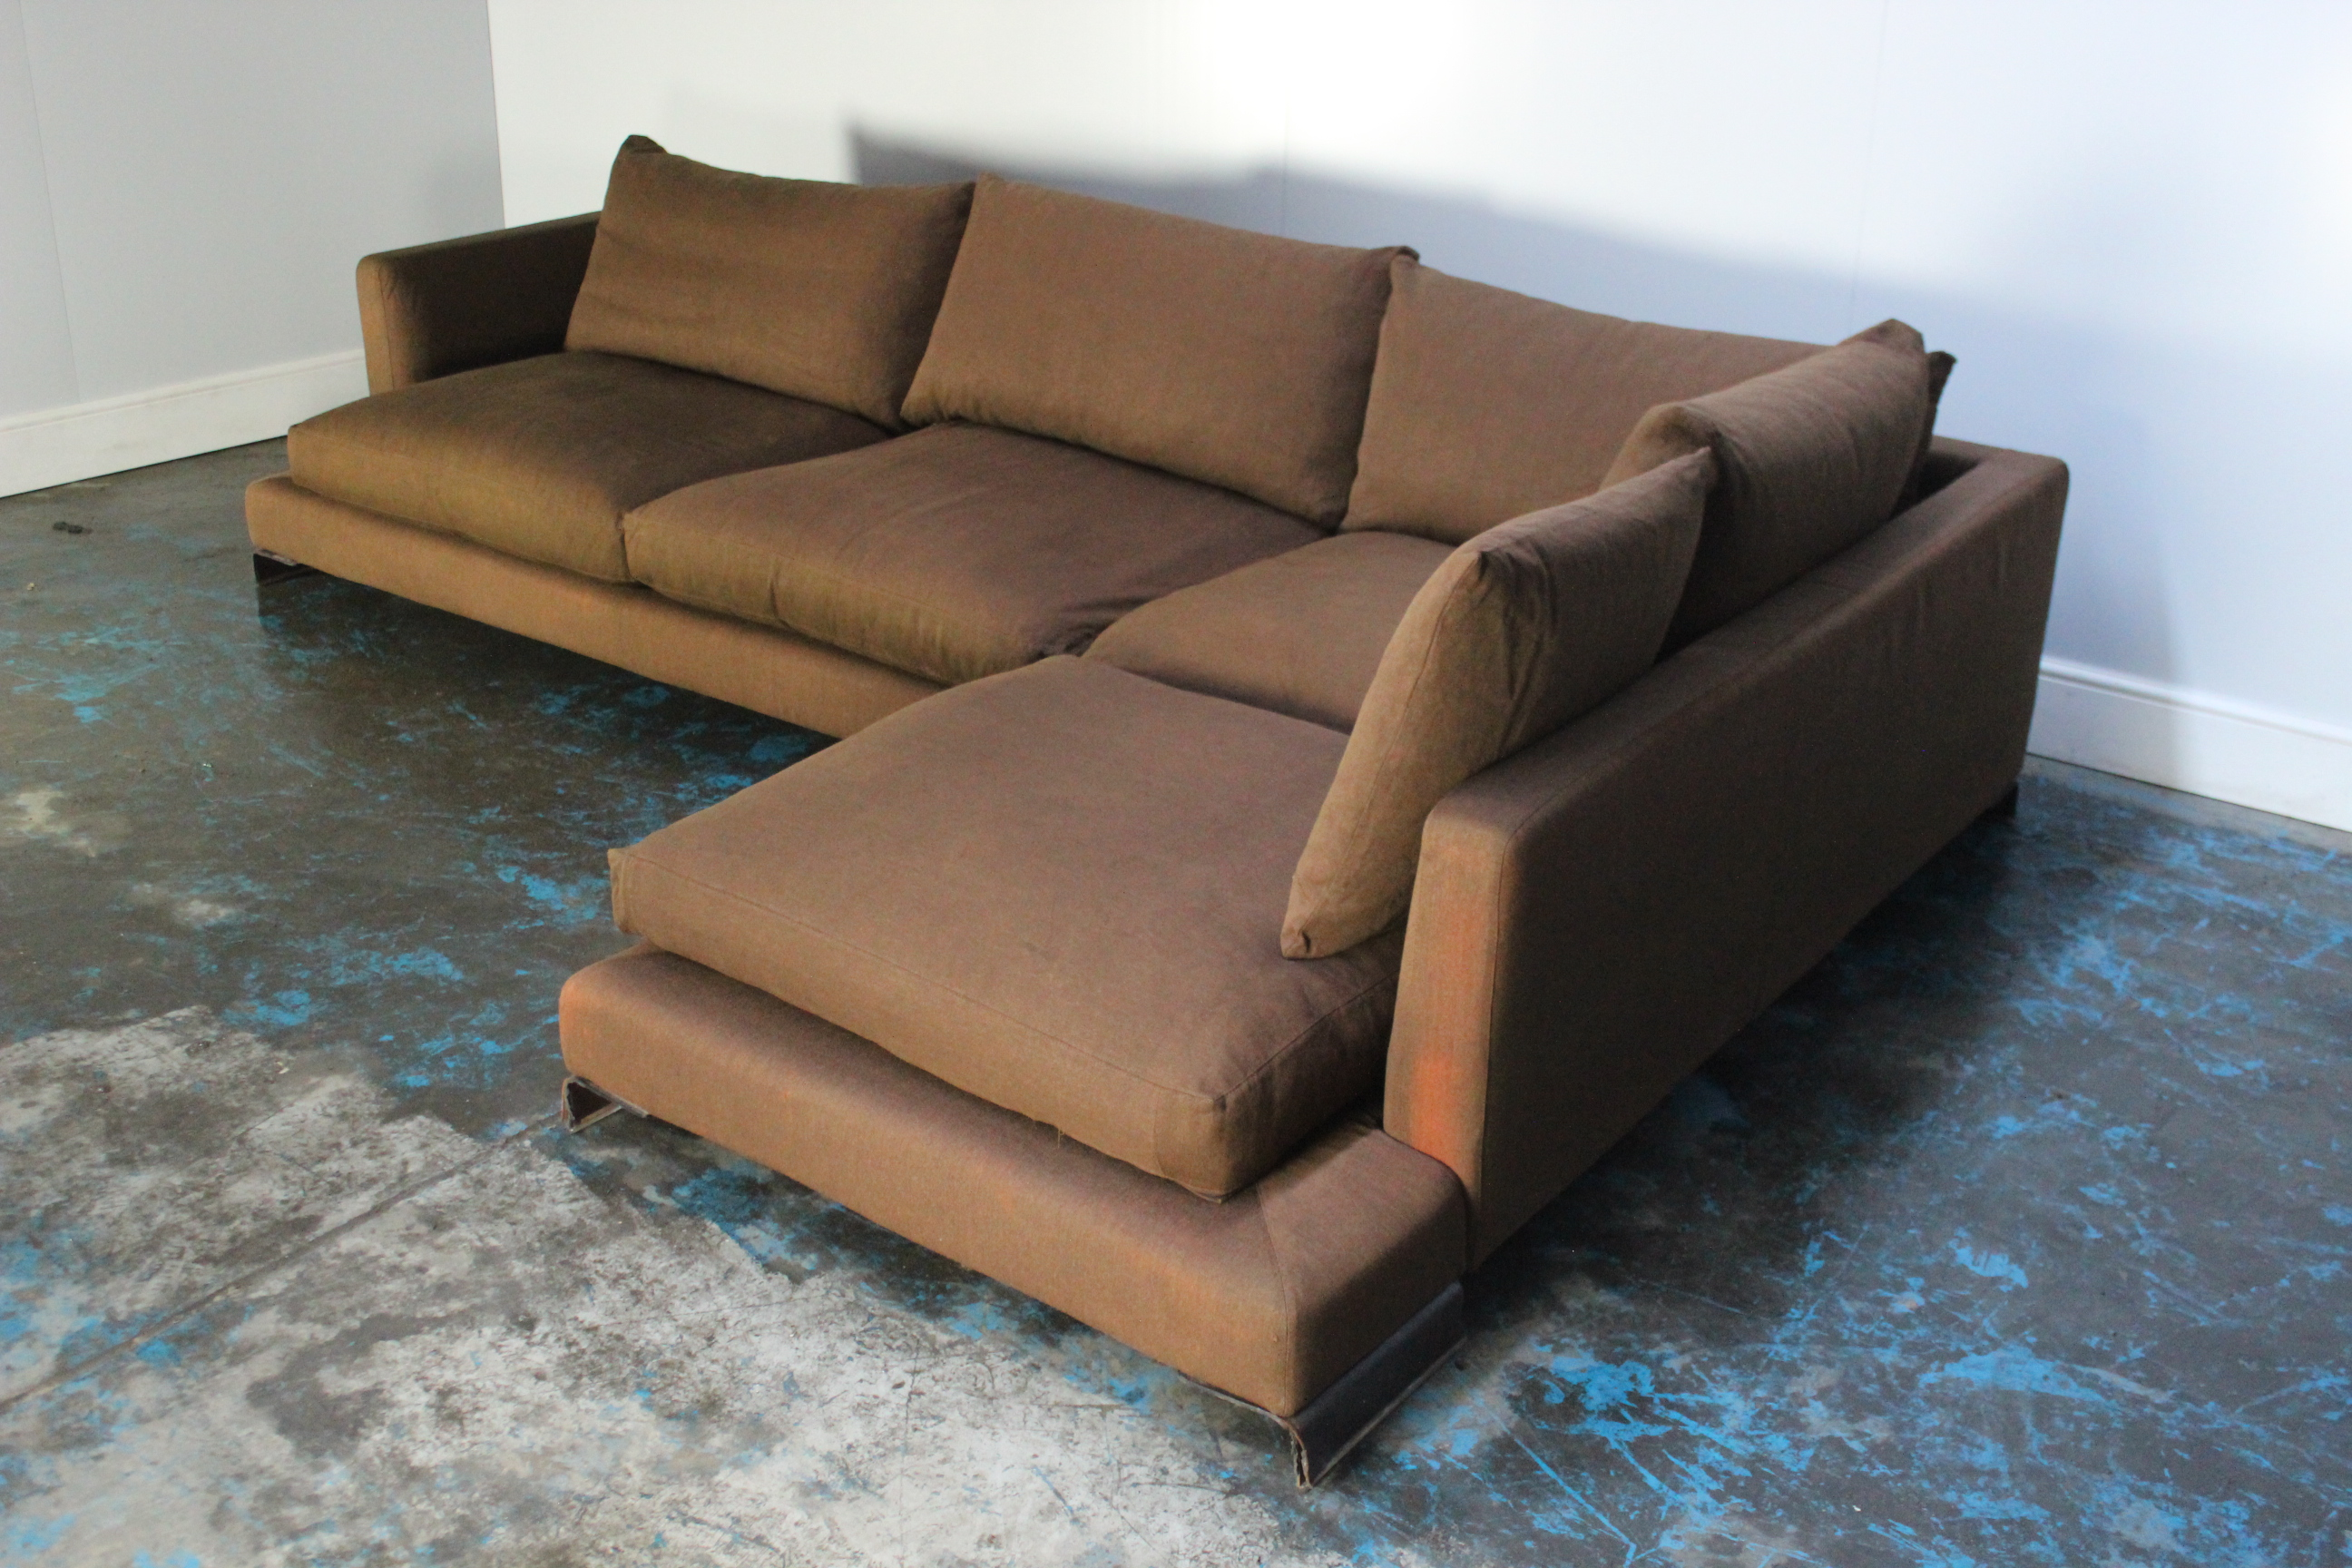 Fabulous Peerless Huge Flexform Long Island Sectional L Shape Sofa Onthecornerstone Fun Painted Chair Ideas Images Onthecornerstoneorg